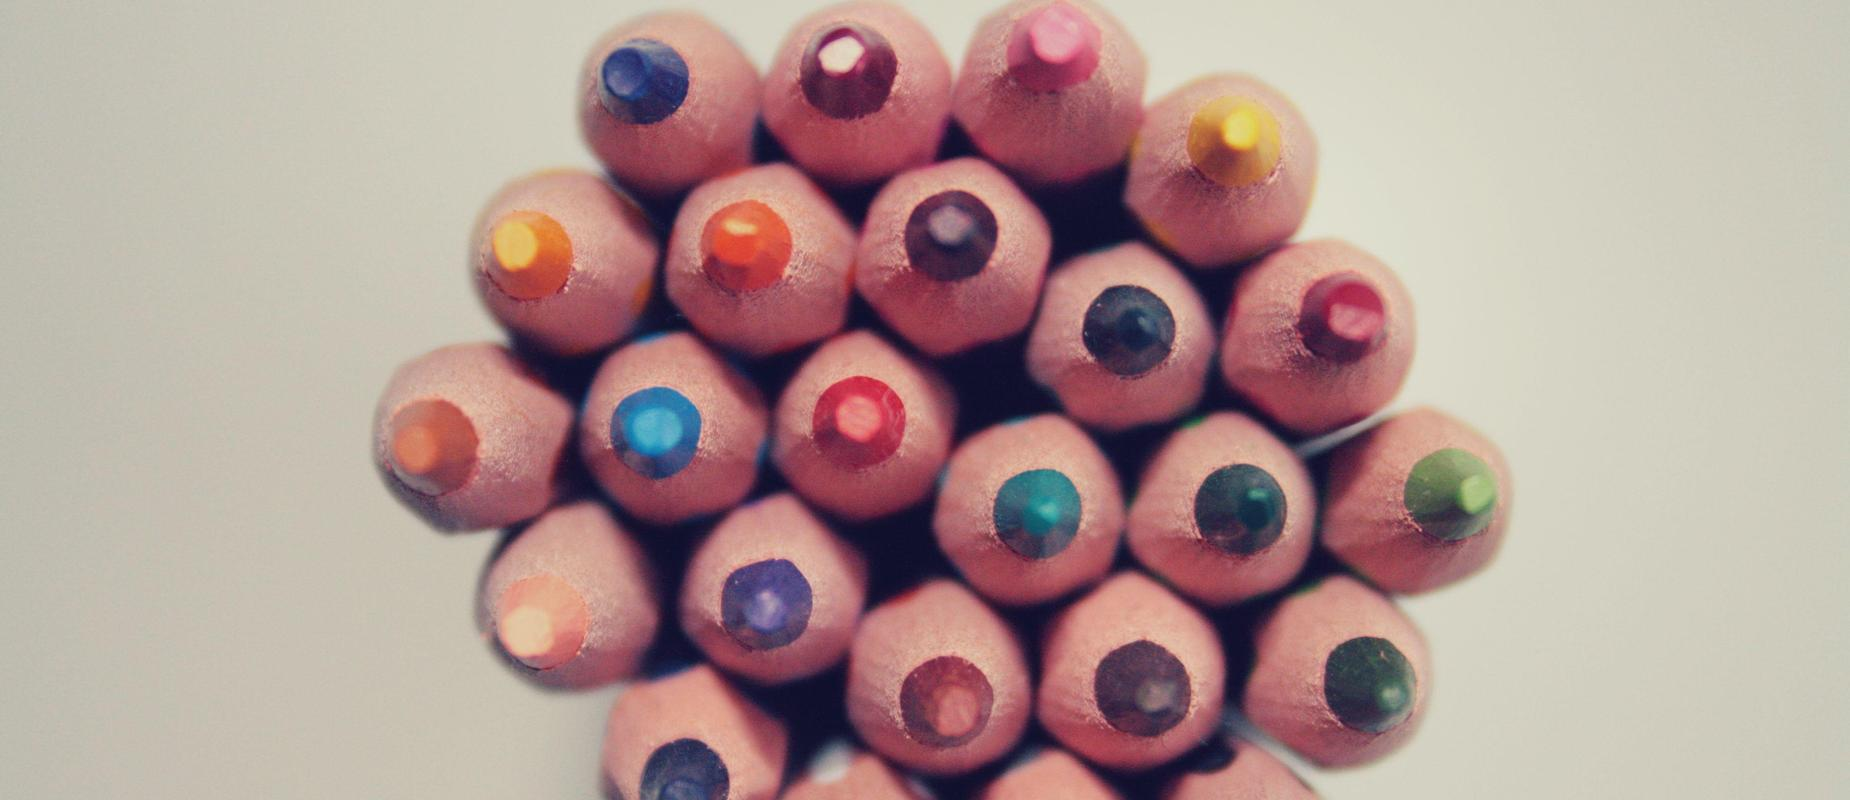 Colored pencils, showing sharpened end.